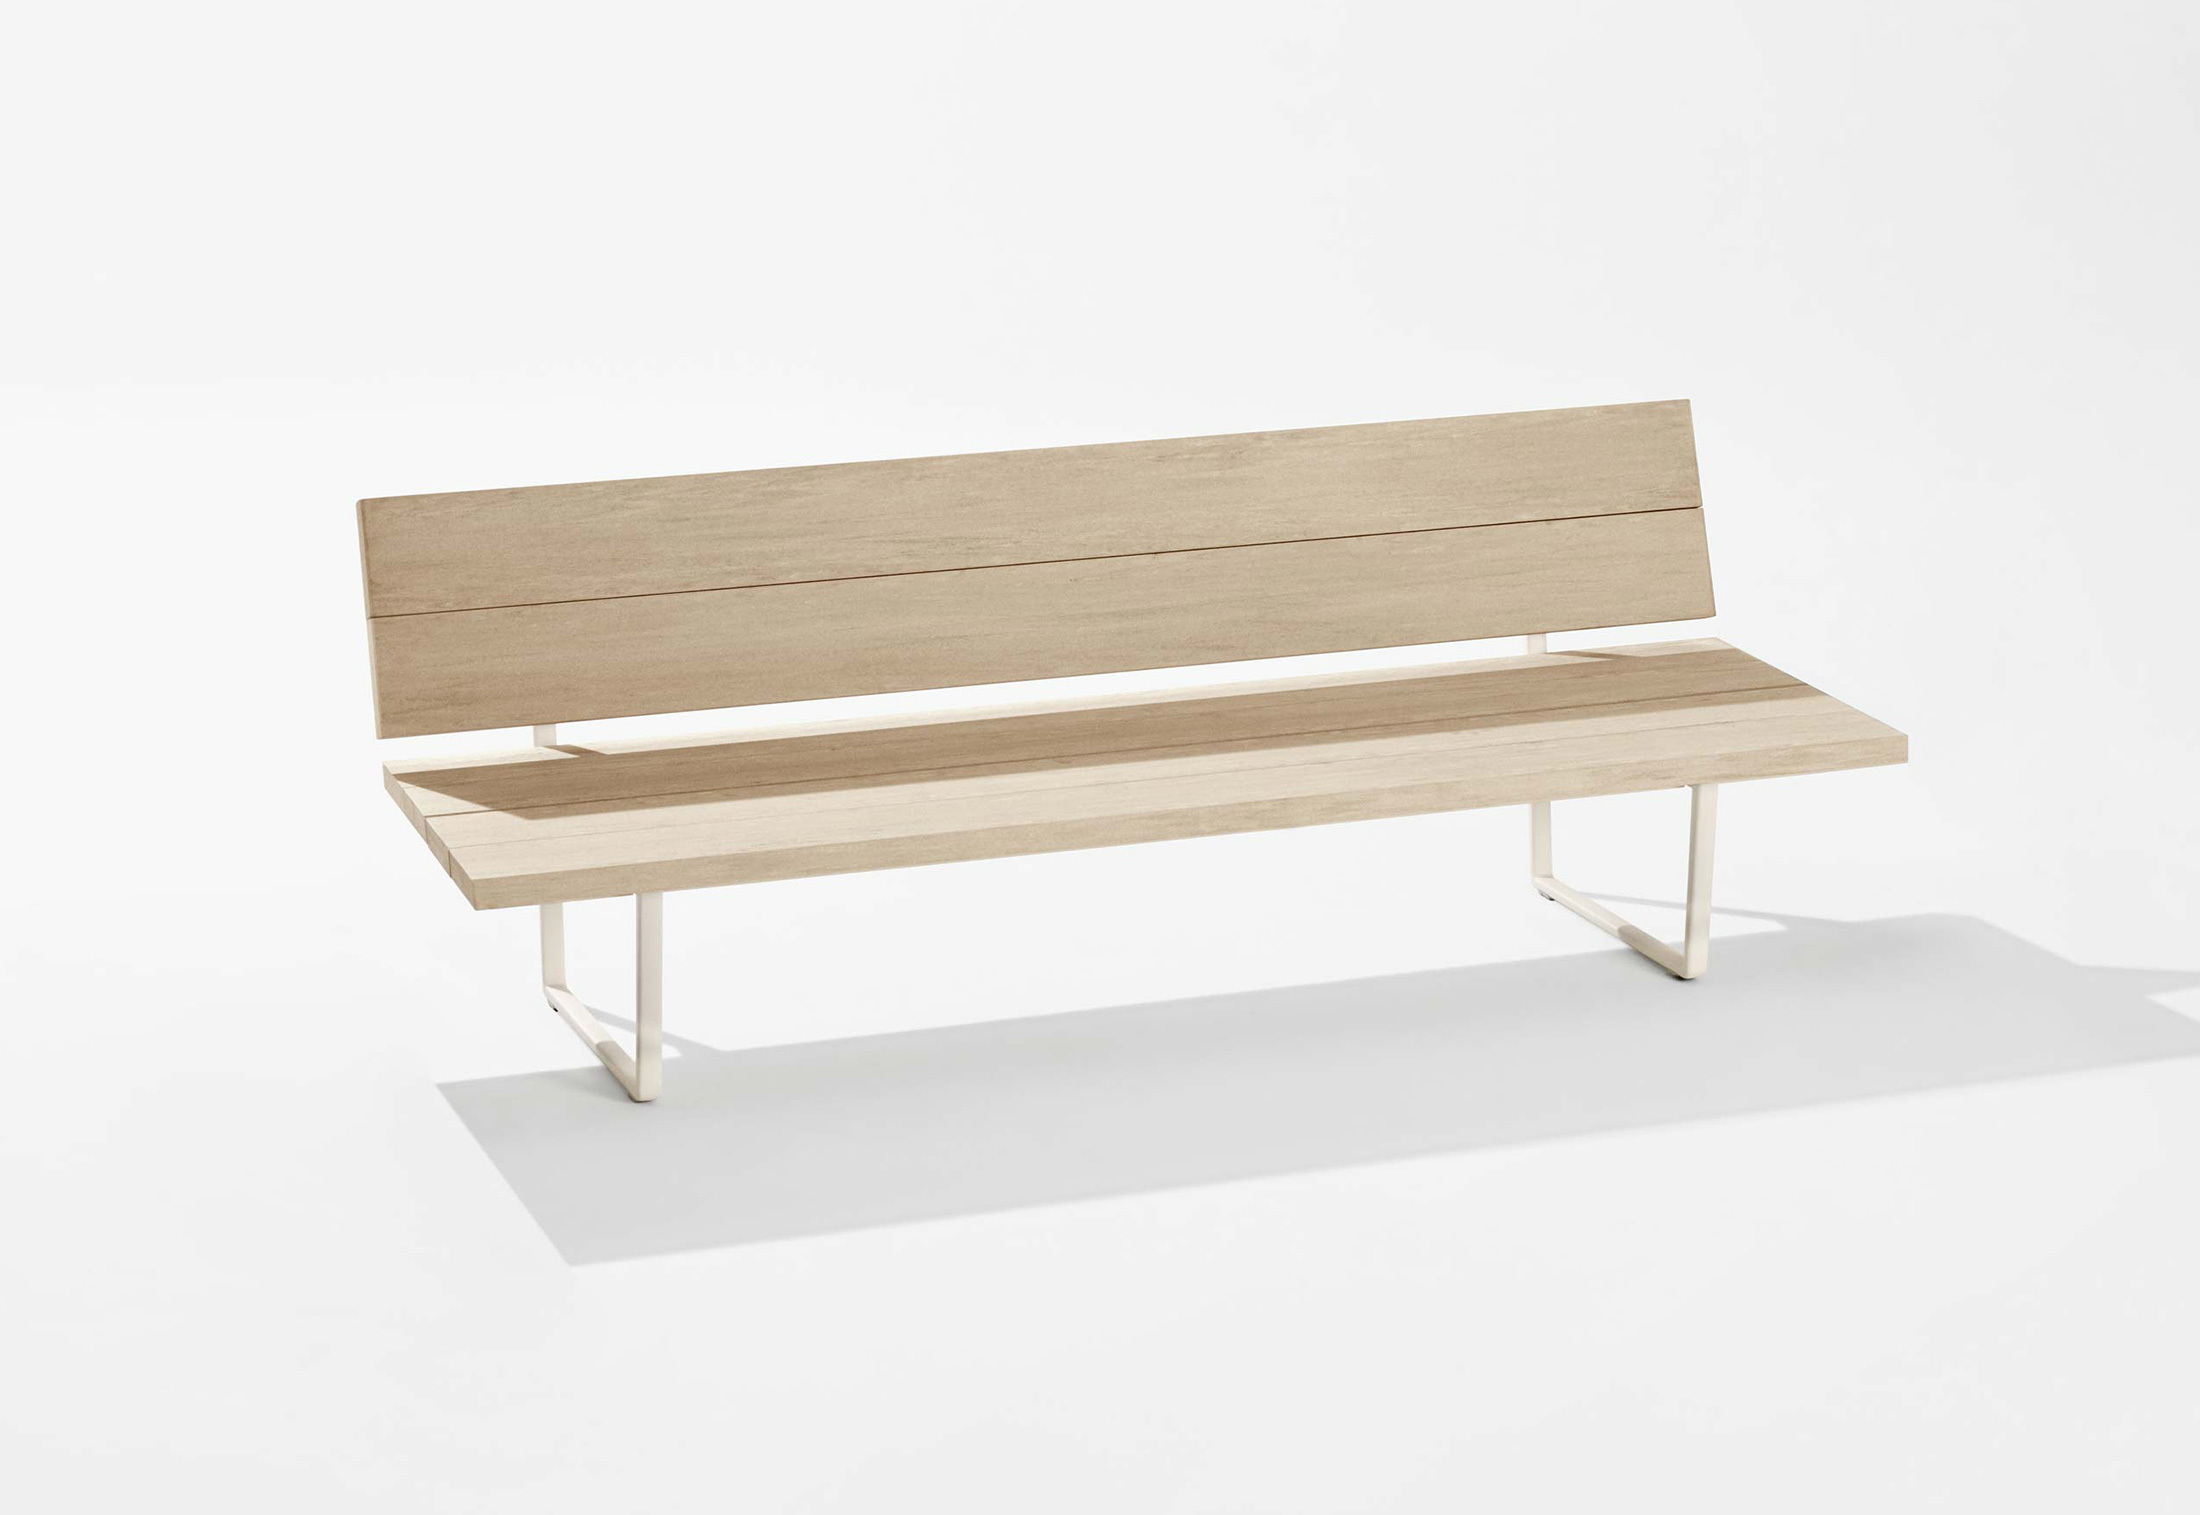 Sensational New Wood Plan Bench With Backrest By Fast Stylepark Pabps2019 Chair Design Images Pabps2019Com